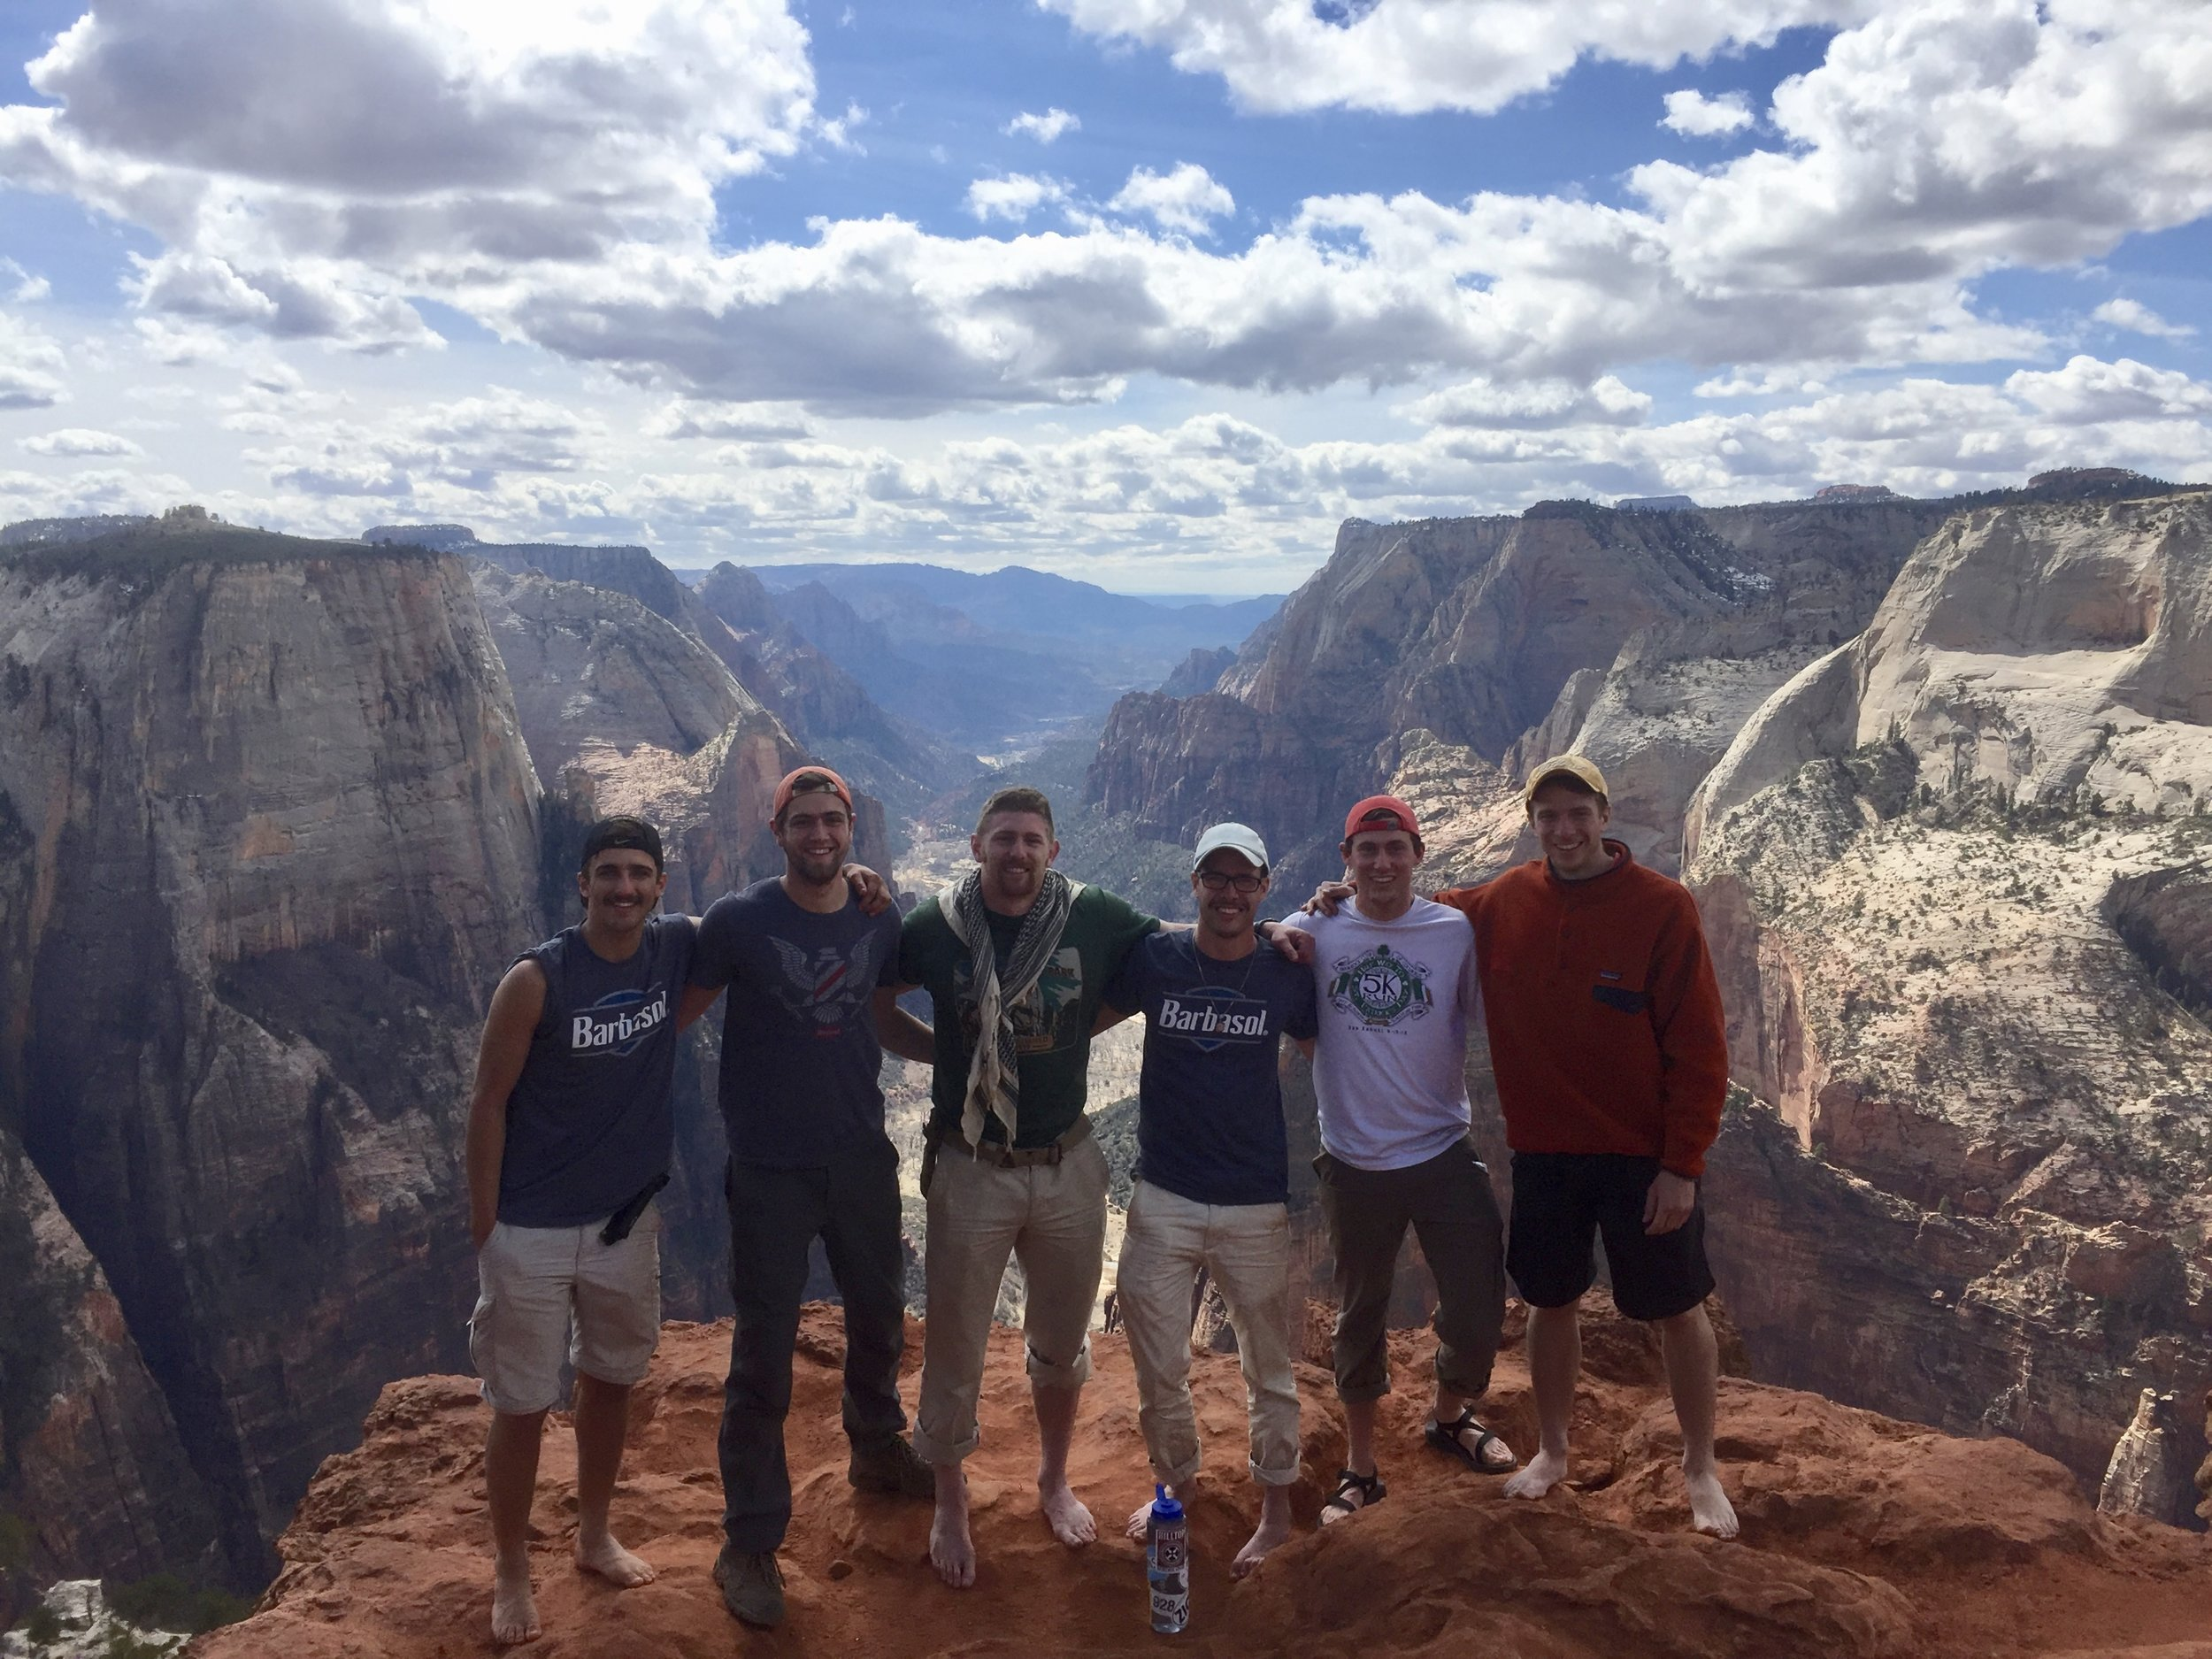 Our group (Antonio, Joe, Mike, Tim, David, and Jeff) at the Observation Point overlooking Zion Canyon.